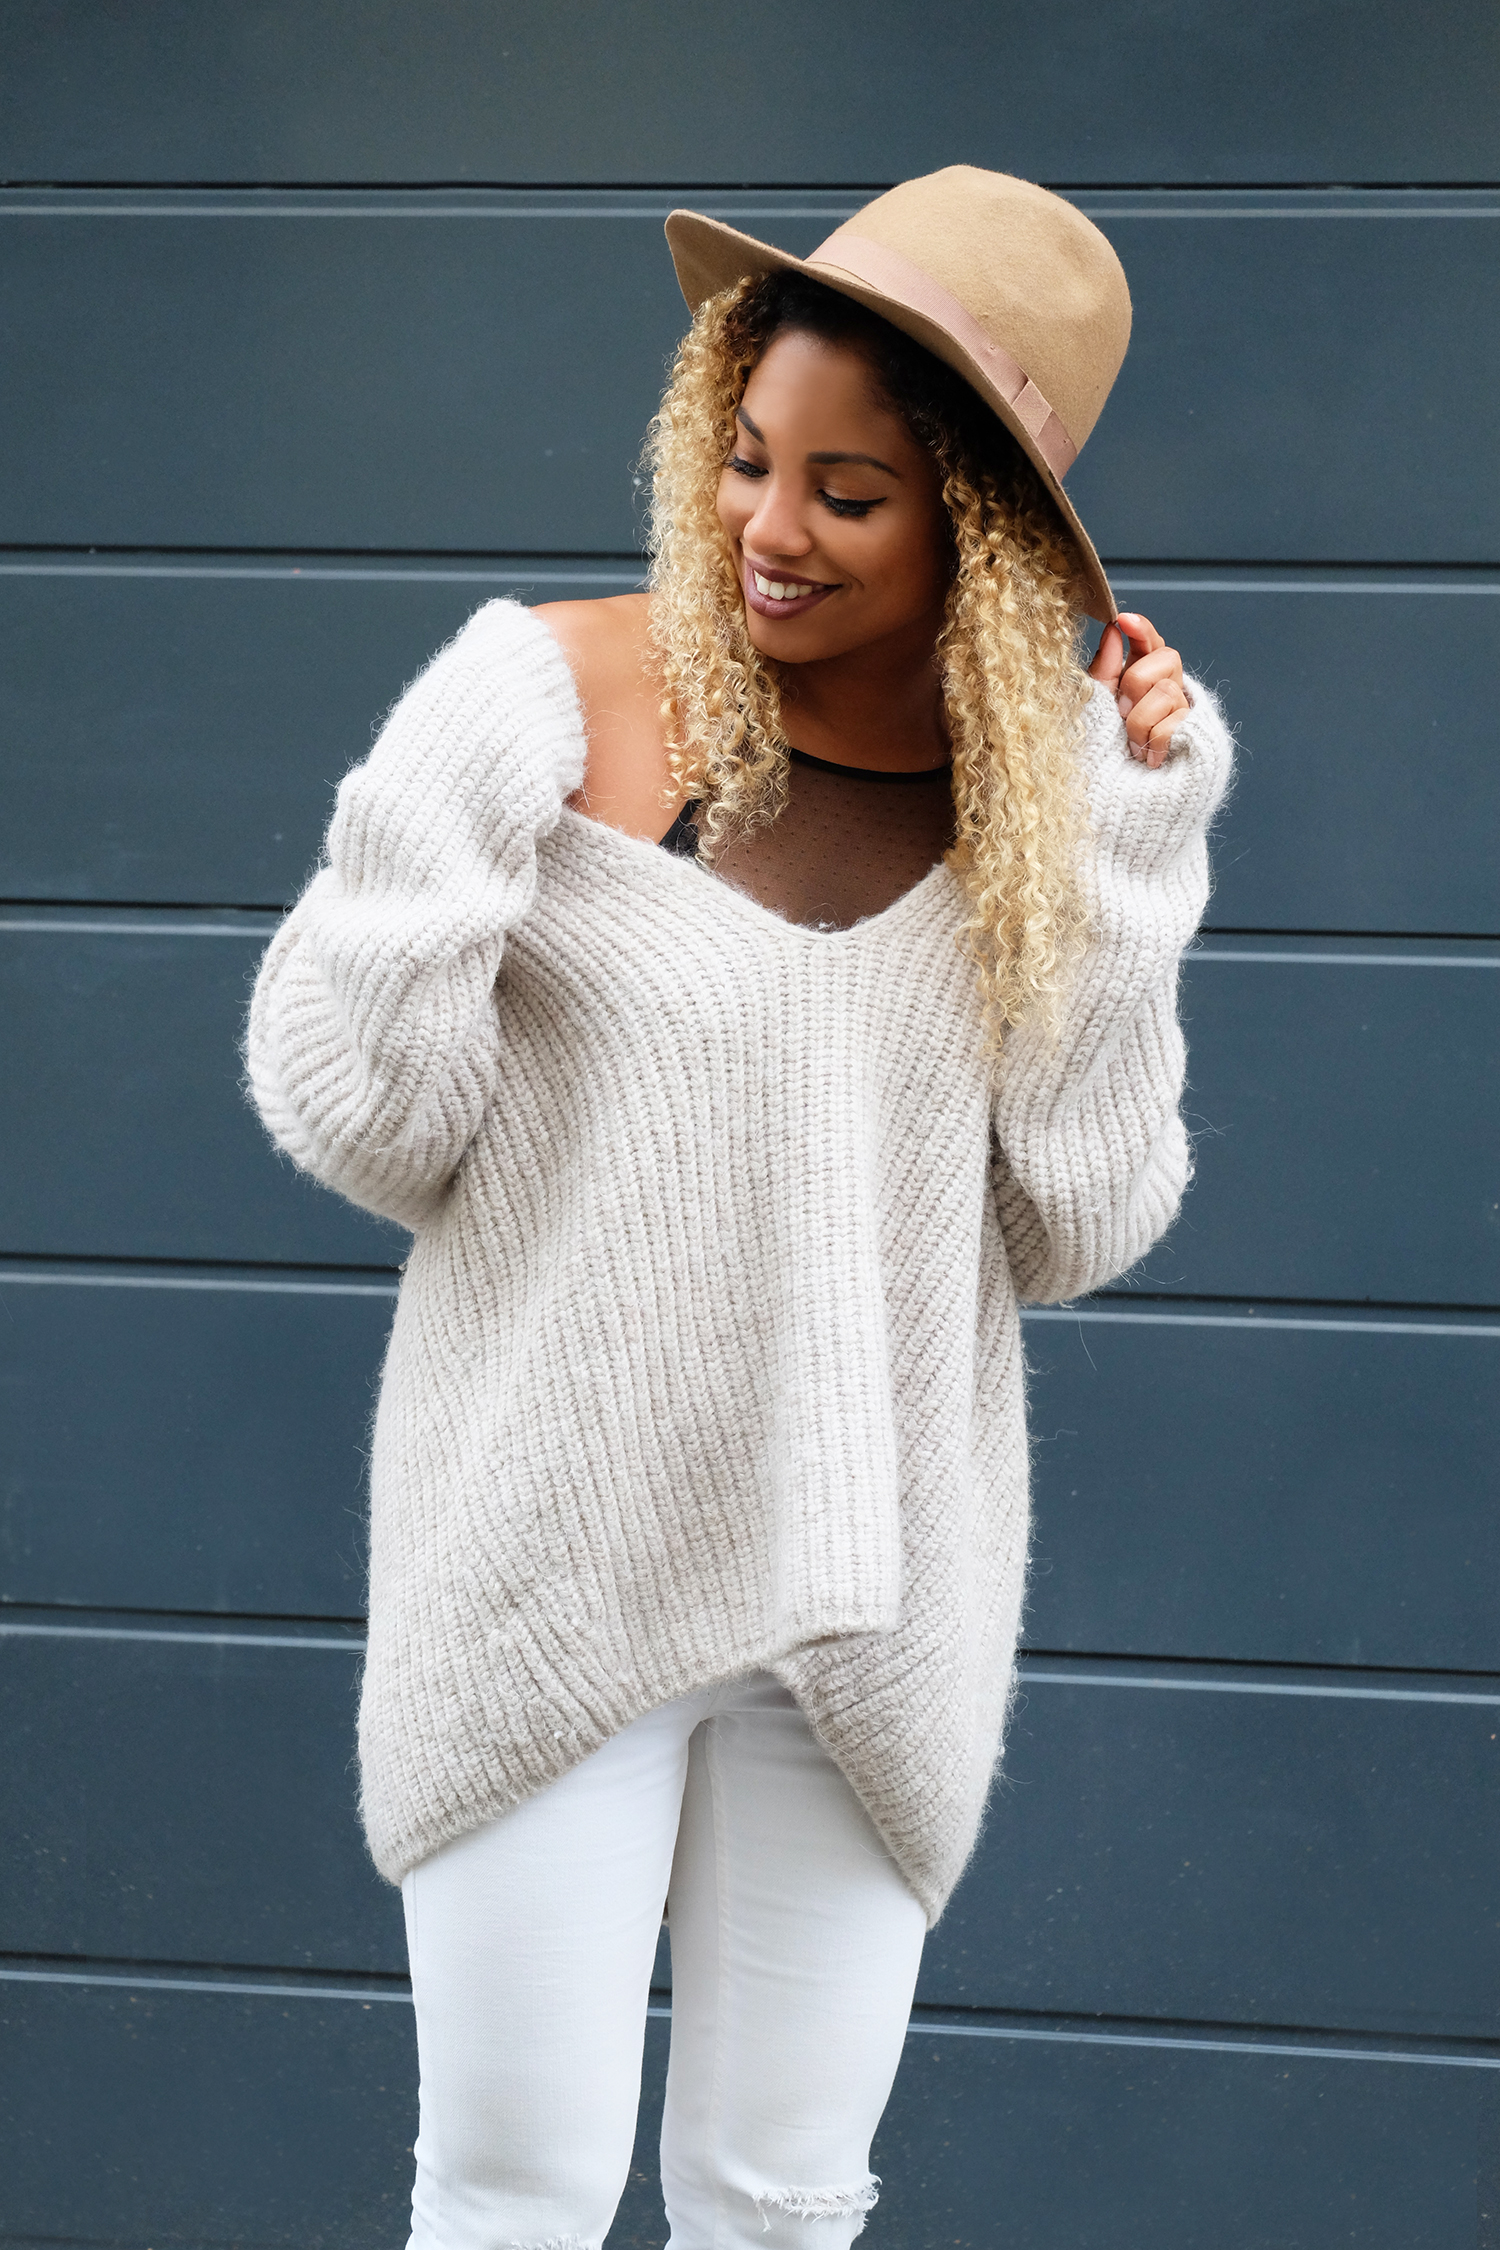 curls-all-over-coziness-all-day-long-blogvorstellung-another-lovely-fashioblog